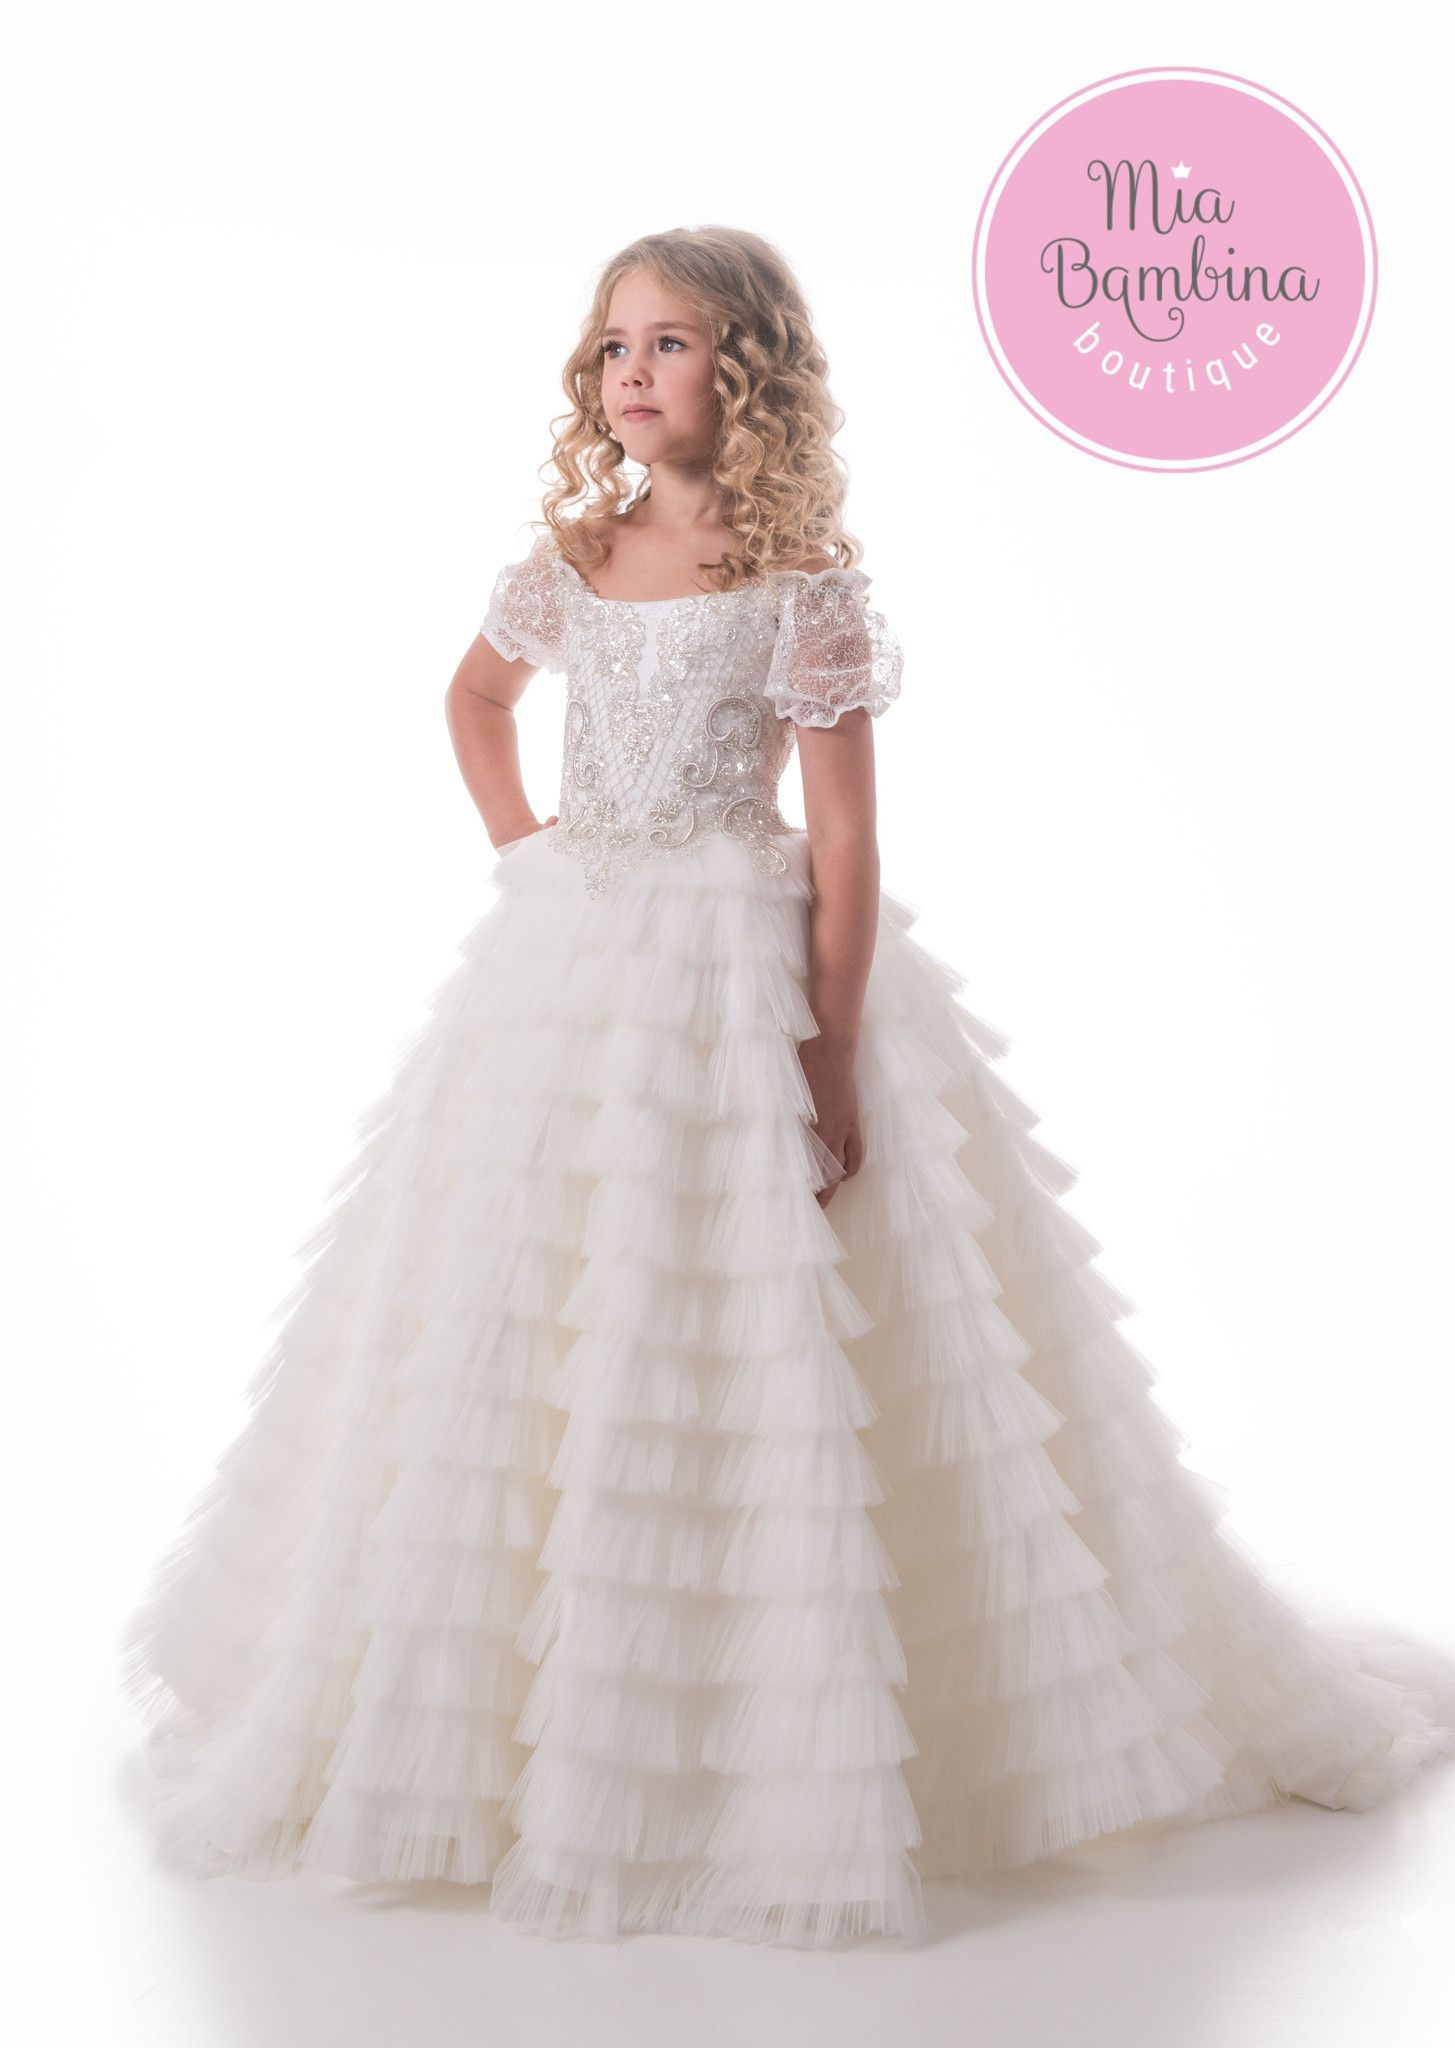 e180525e6225 The absolutely gorgeous flower girl dress features a full ruffle tulle floor-length  skirt and sheer lace cup sleeves. The dress back grabs your attention ...